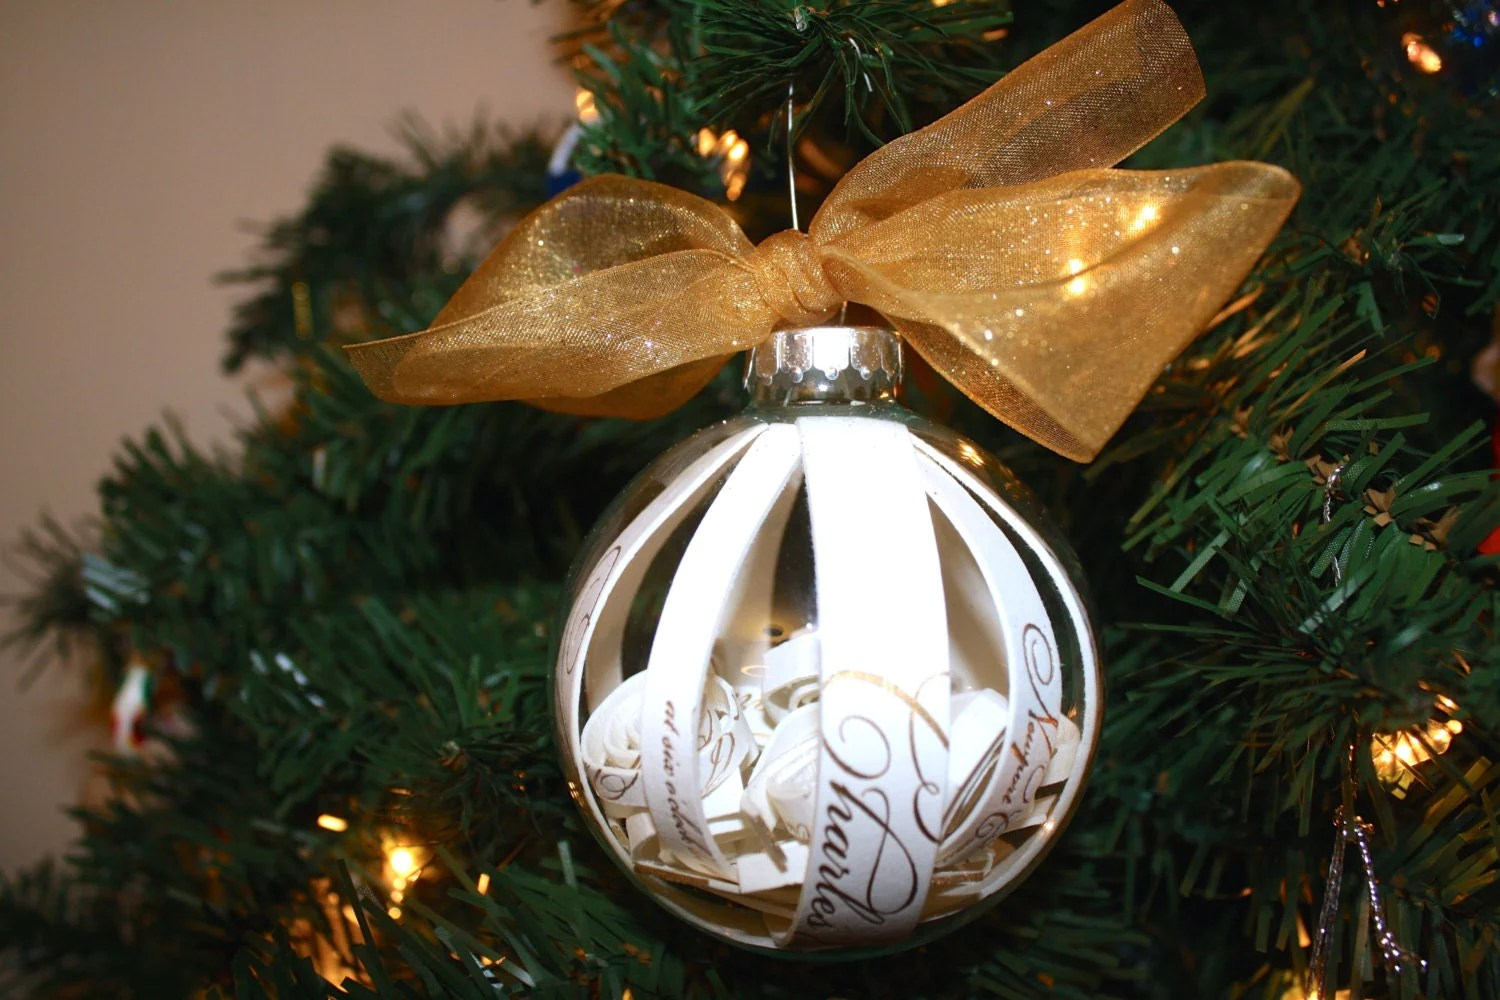 Wedding Gift Ornaments: Our First Christmas Ornament